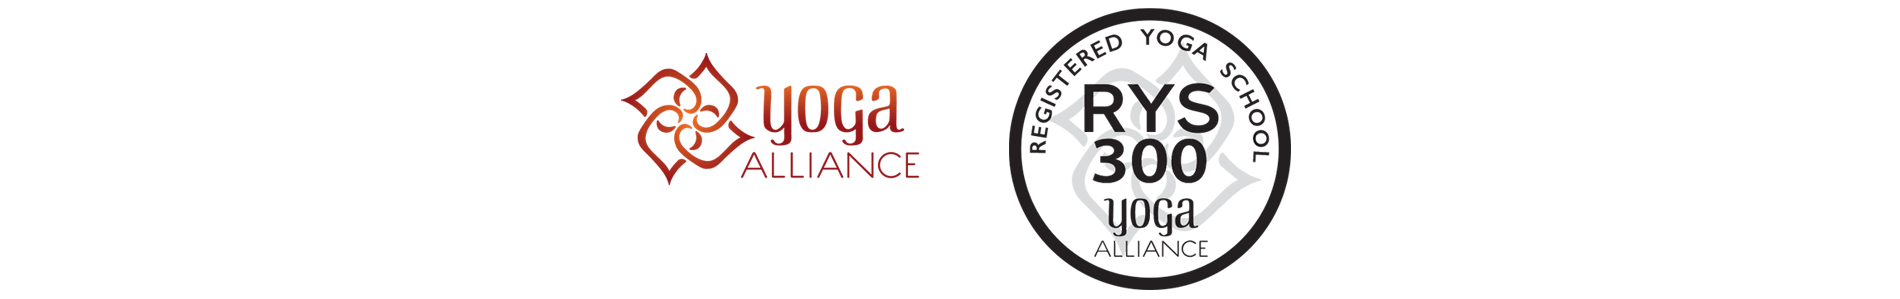 300 ryt yoga alliance registered shreehariyoga